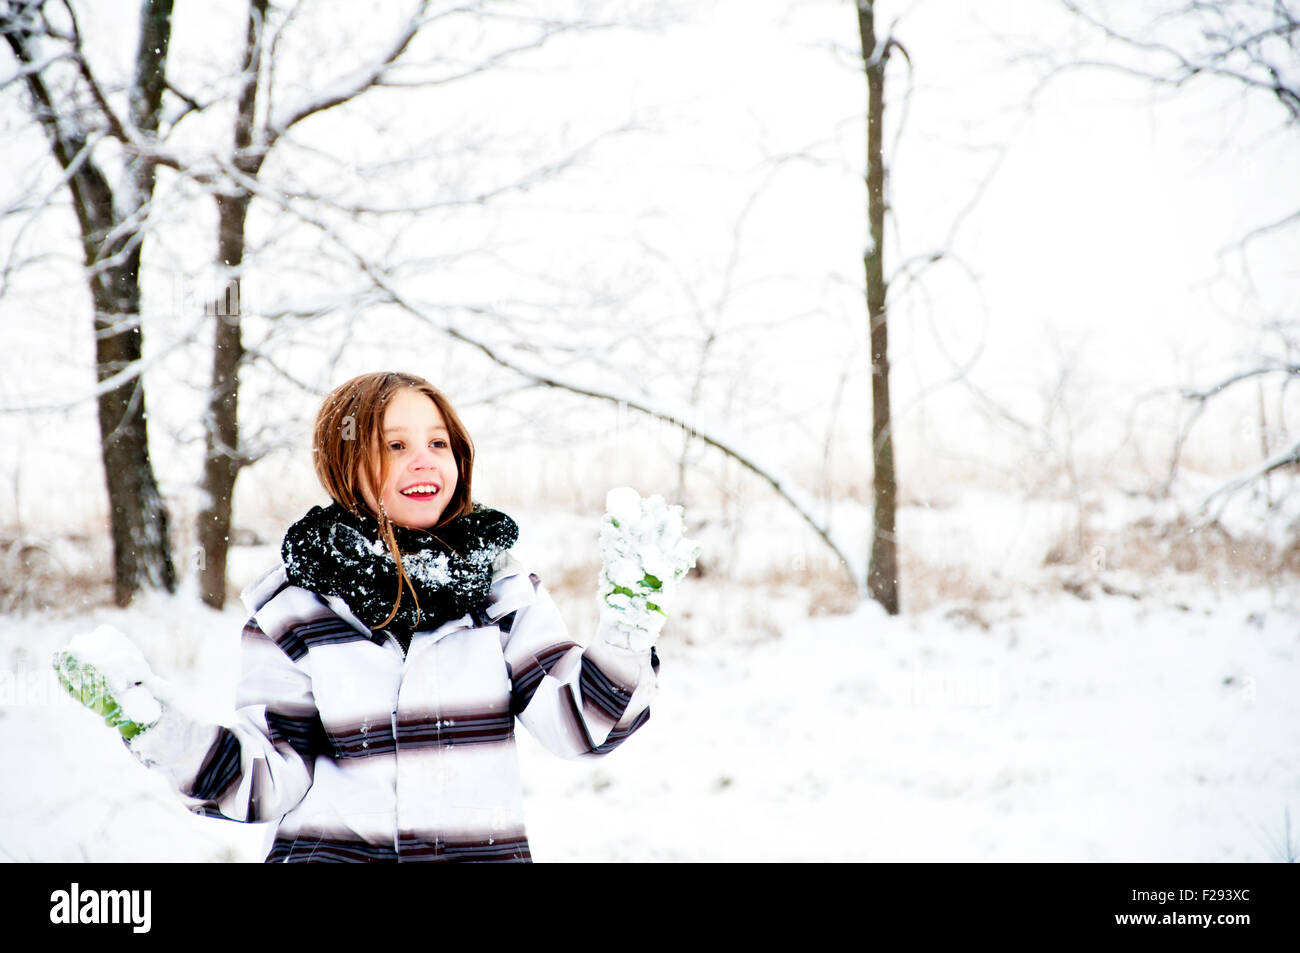 Girl holding snowball to throw - Stock Image